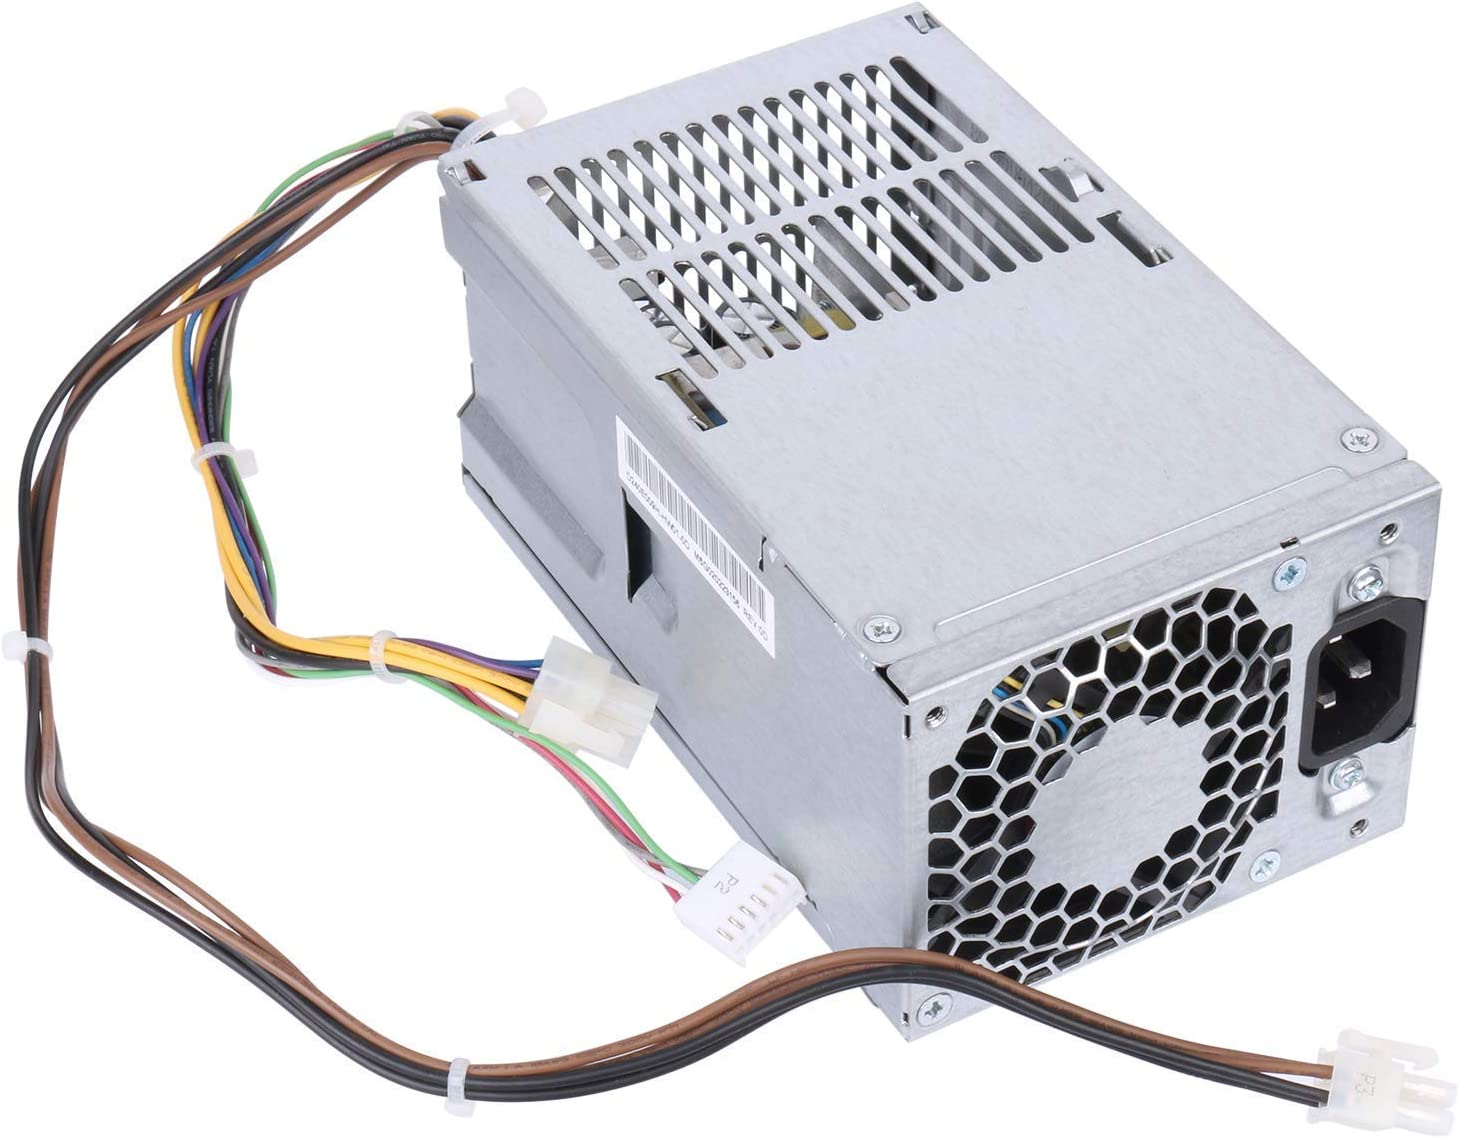 S-Union 240W Power Supply Compatible with HP ProDesk 400 600 800 G1 SFF, M/N: D12-240P1A PS4201-2HF PS-4241-2HF, P/N: 702309-001 751886-001 796351-001 702457-001(Also Works for HP Desktop with 200W)